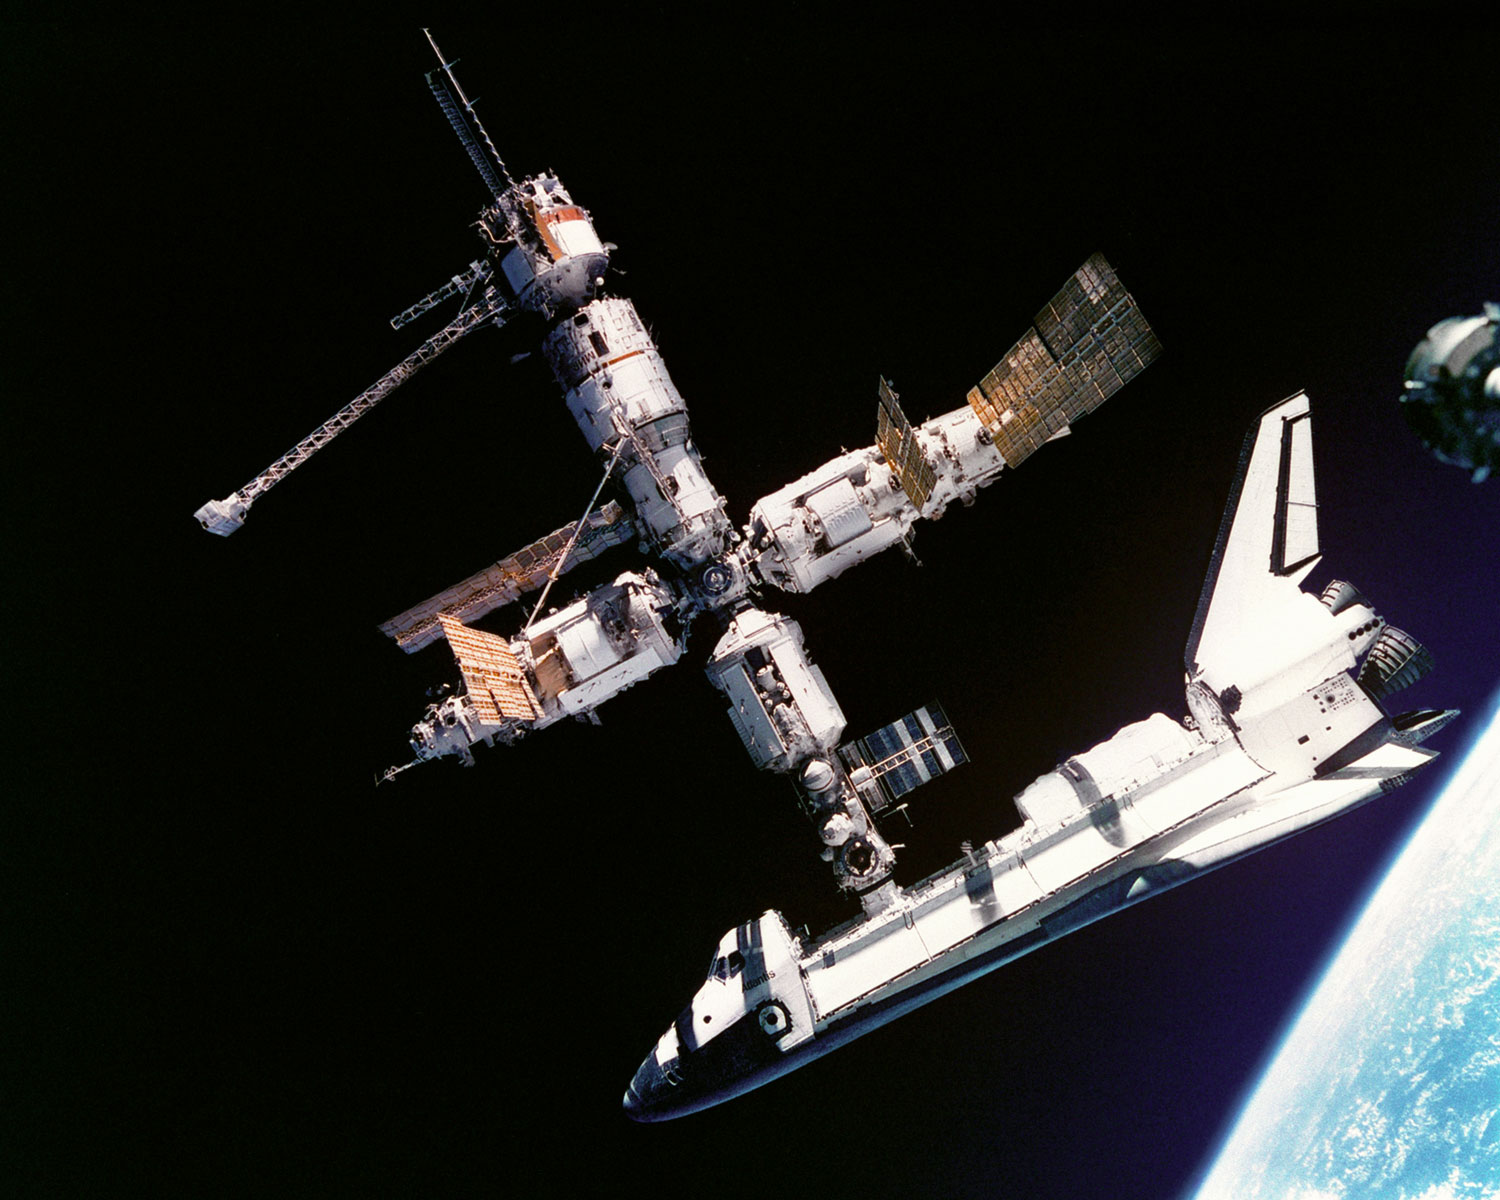 Shuttle Atlantis docked with ISS (NASA)